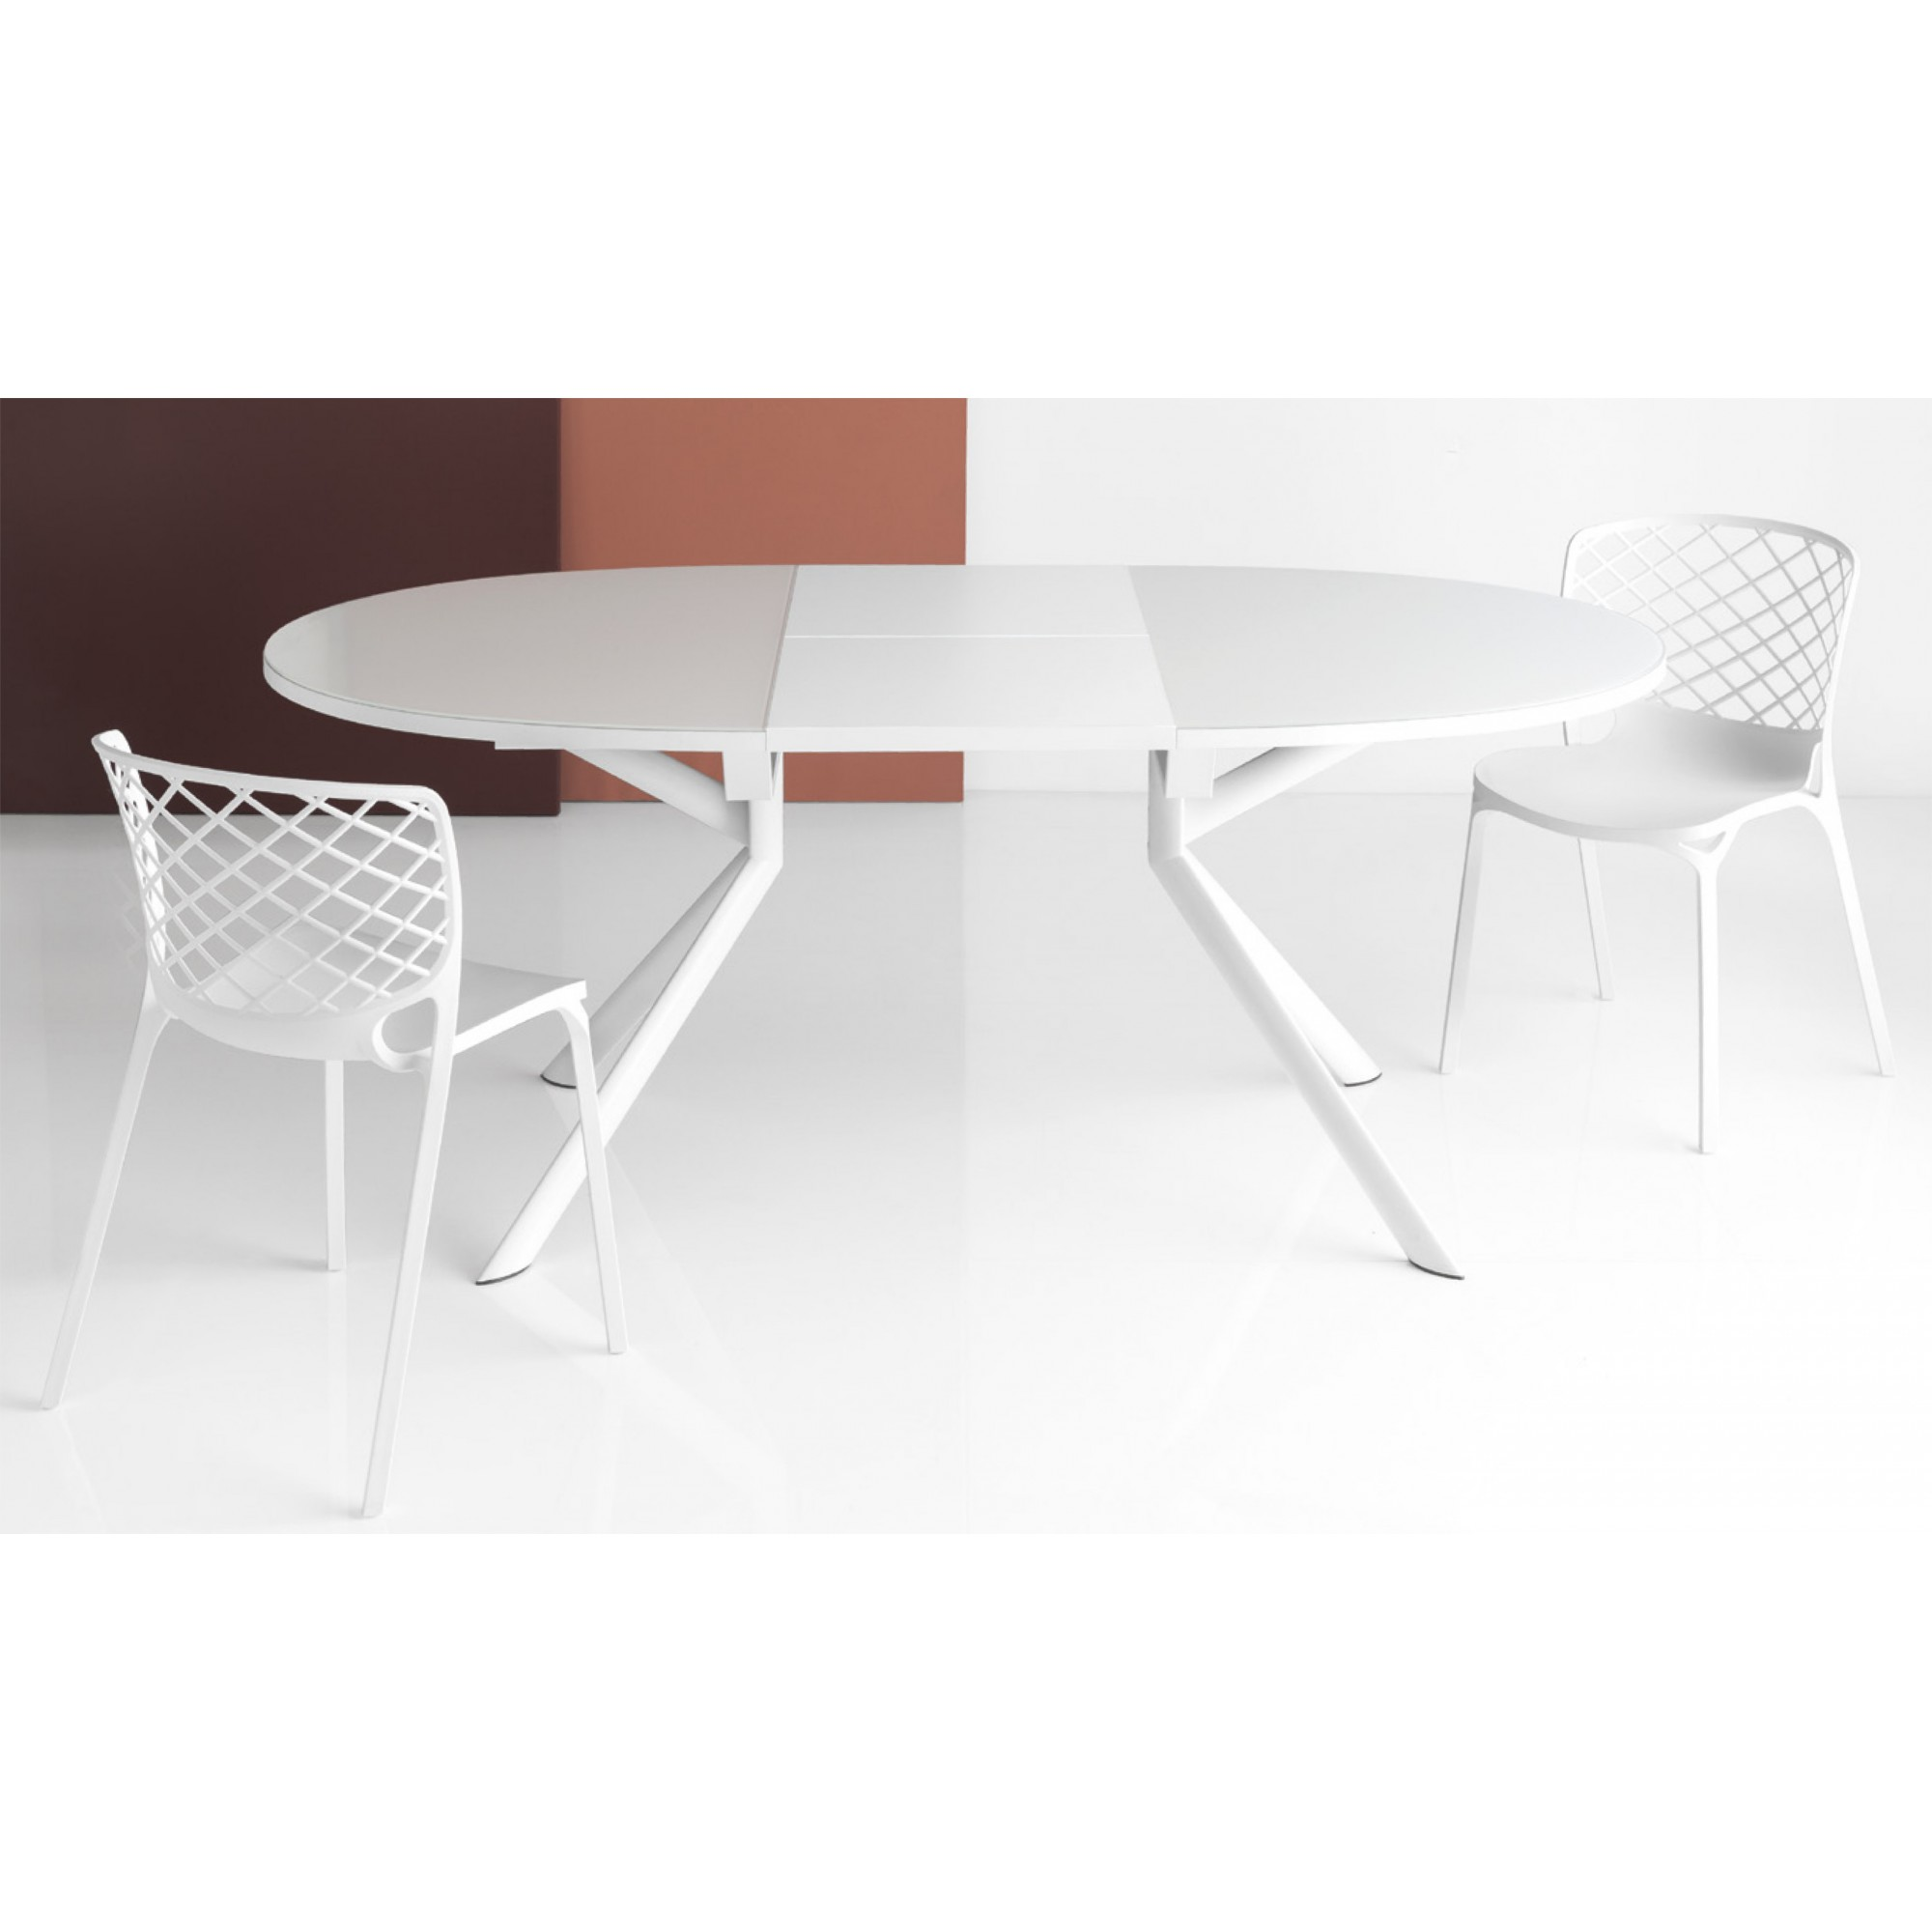 Tavolo Allungabile Vetro Calligaris.Giove Extending Tables Tables Connubia By Calligaris